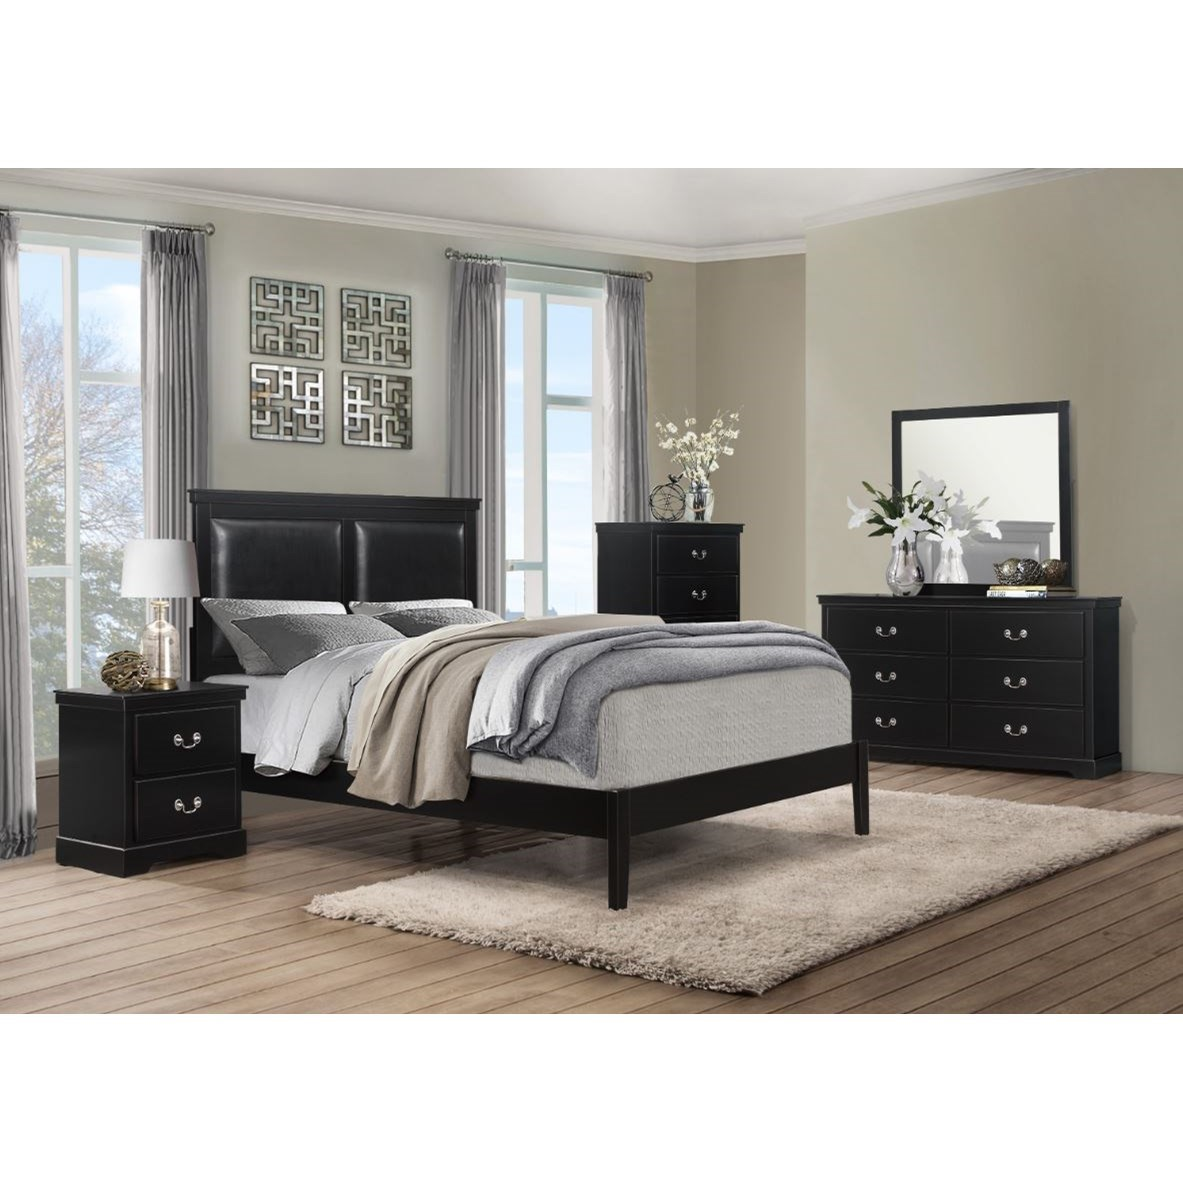 Seabright Queen Bedroom Group by Homelegance at Rife's Home Furniture